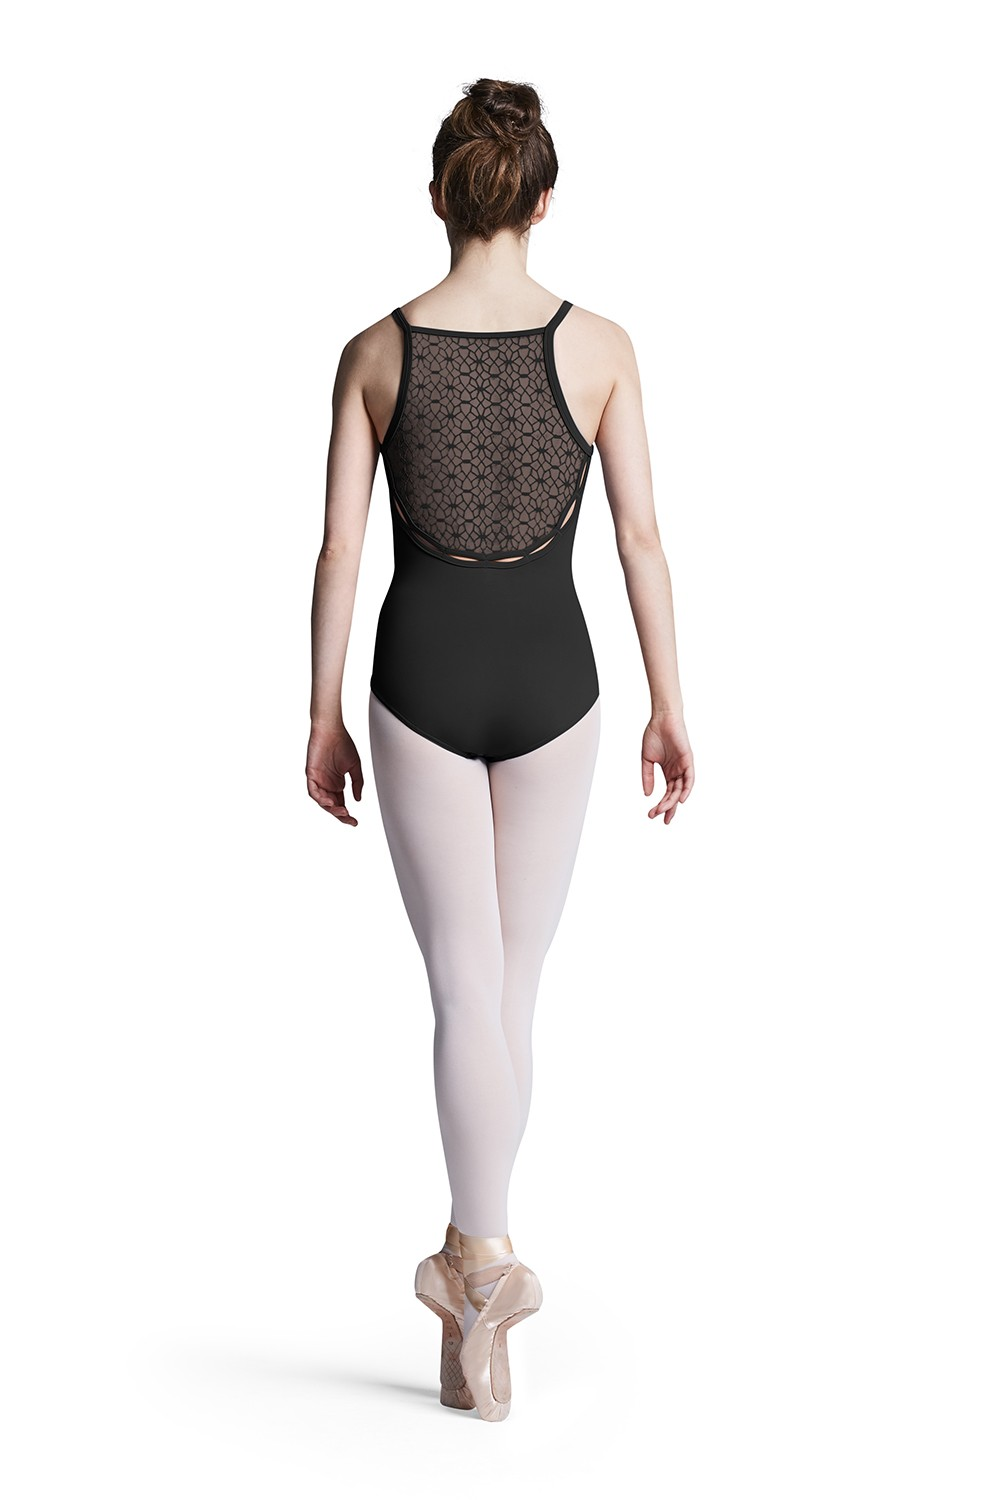 Dionne Women's Dance Leotards